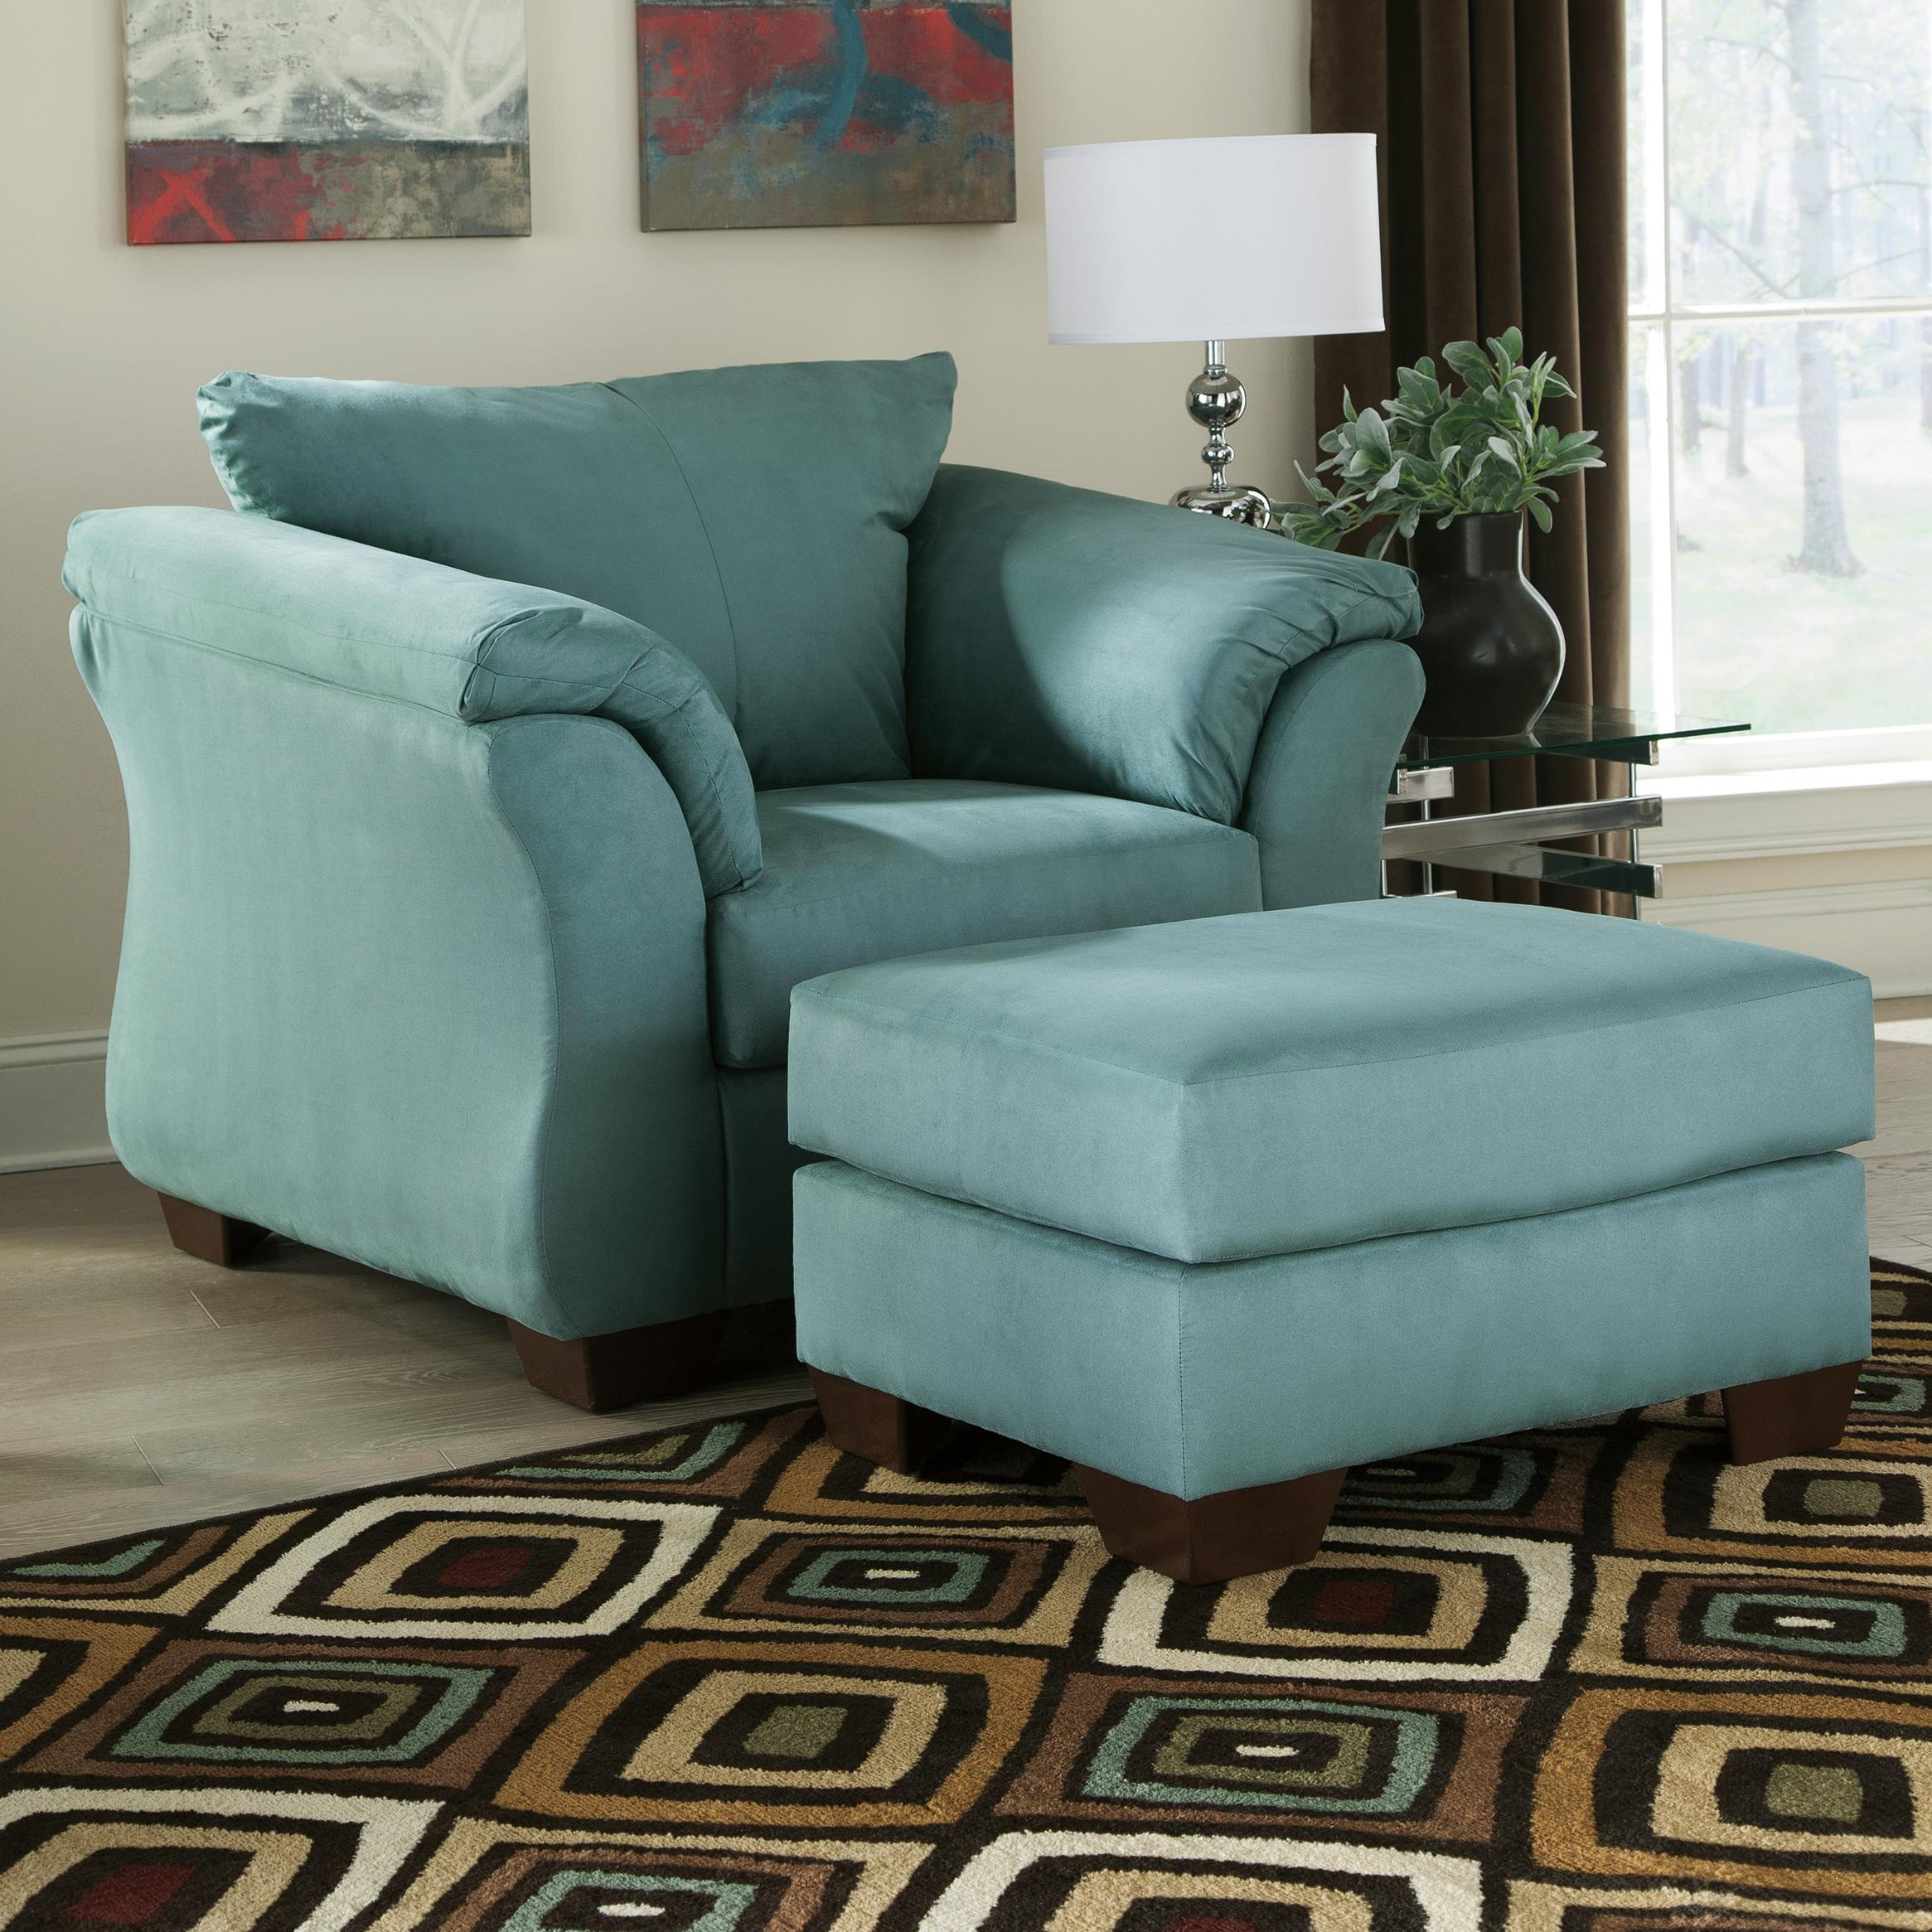 Signature Design by Ashley Darcy - Sky Upholstered Chair and Ottoman - Item Number: 7500620+14